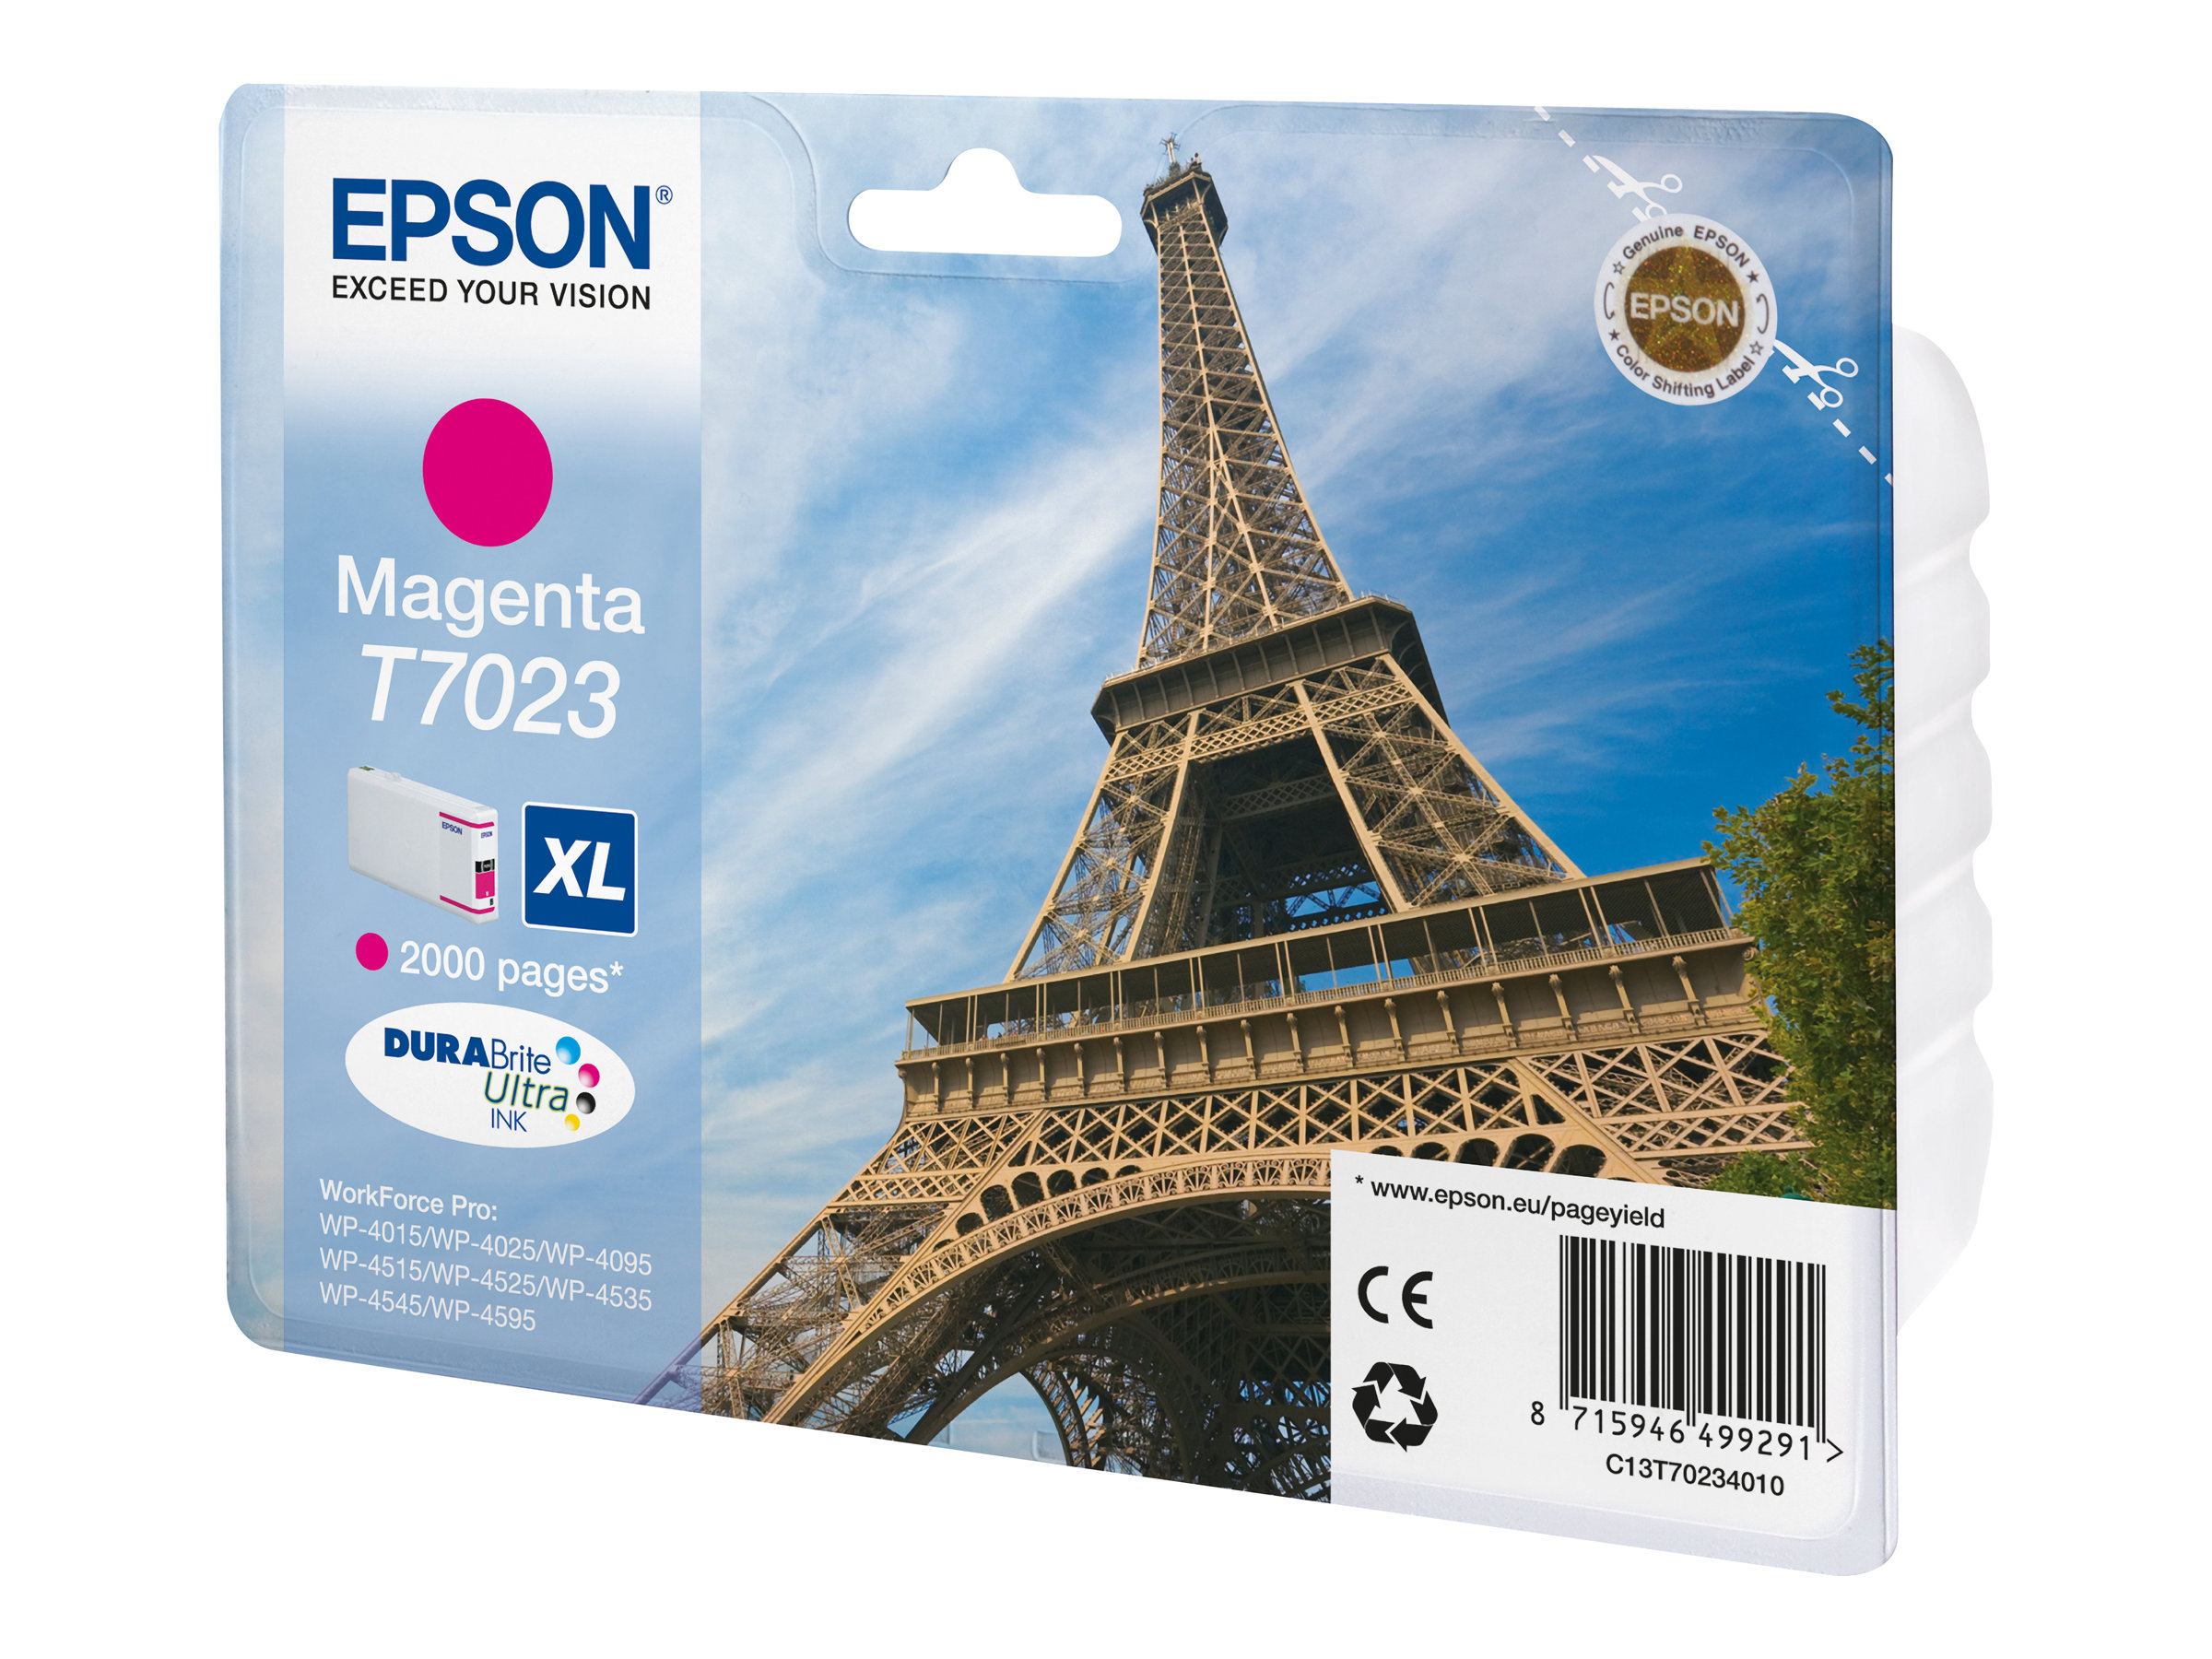 epson t7023 tour eiffel taille xl magenta originale cartouche d 39 encre epson. Black Bedroom Furniture Sets. Home Design Ideas